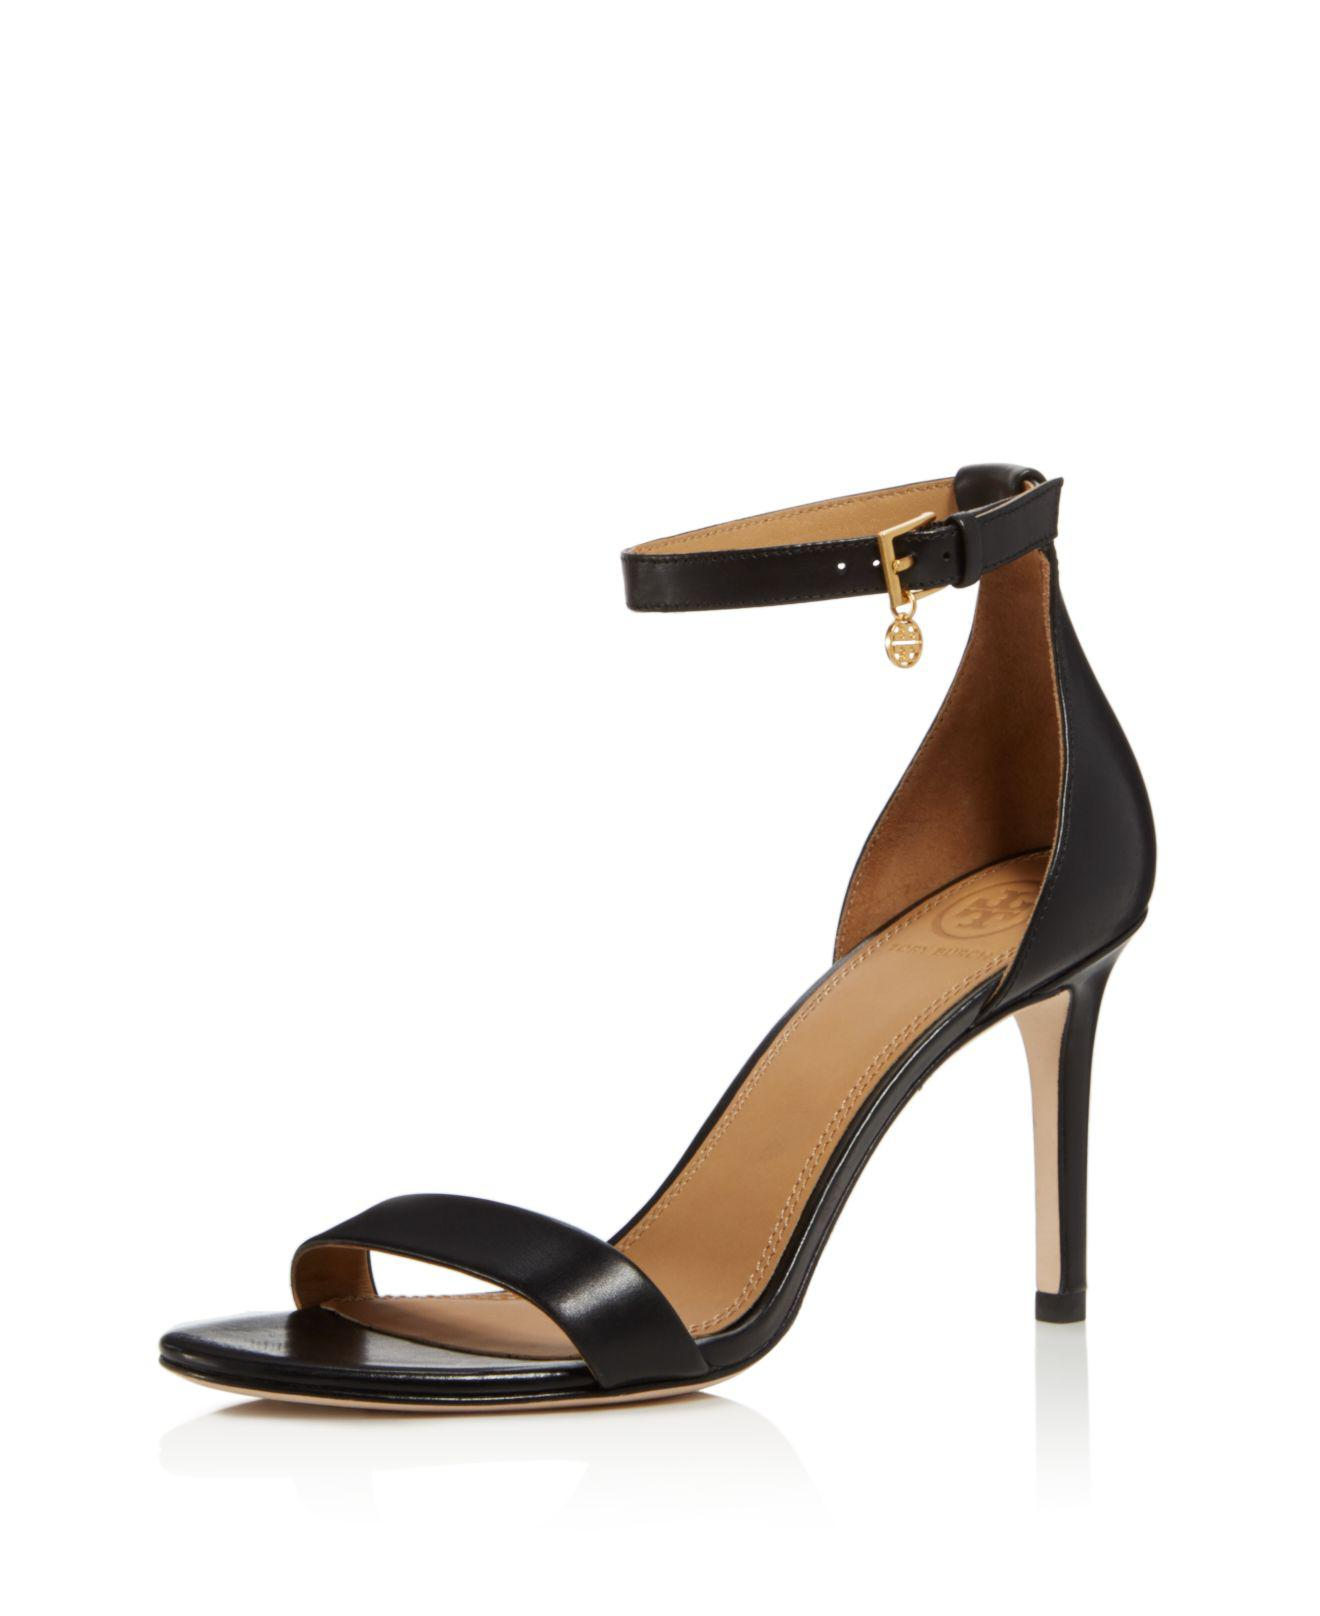 Tory Burch Women's Ellie Leather High-Heel Ankle Strap Sandals vn2vt